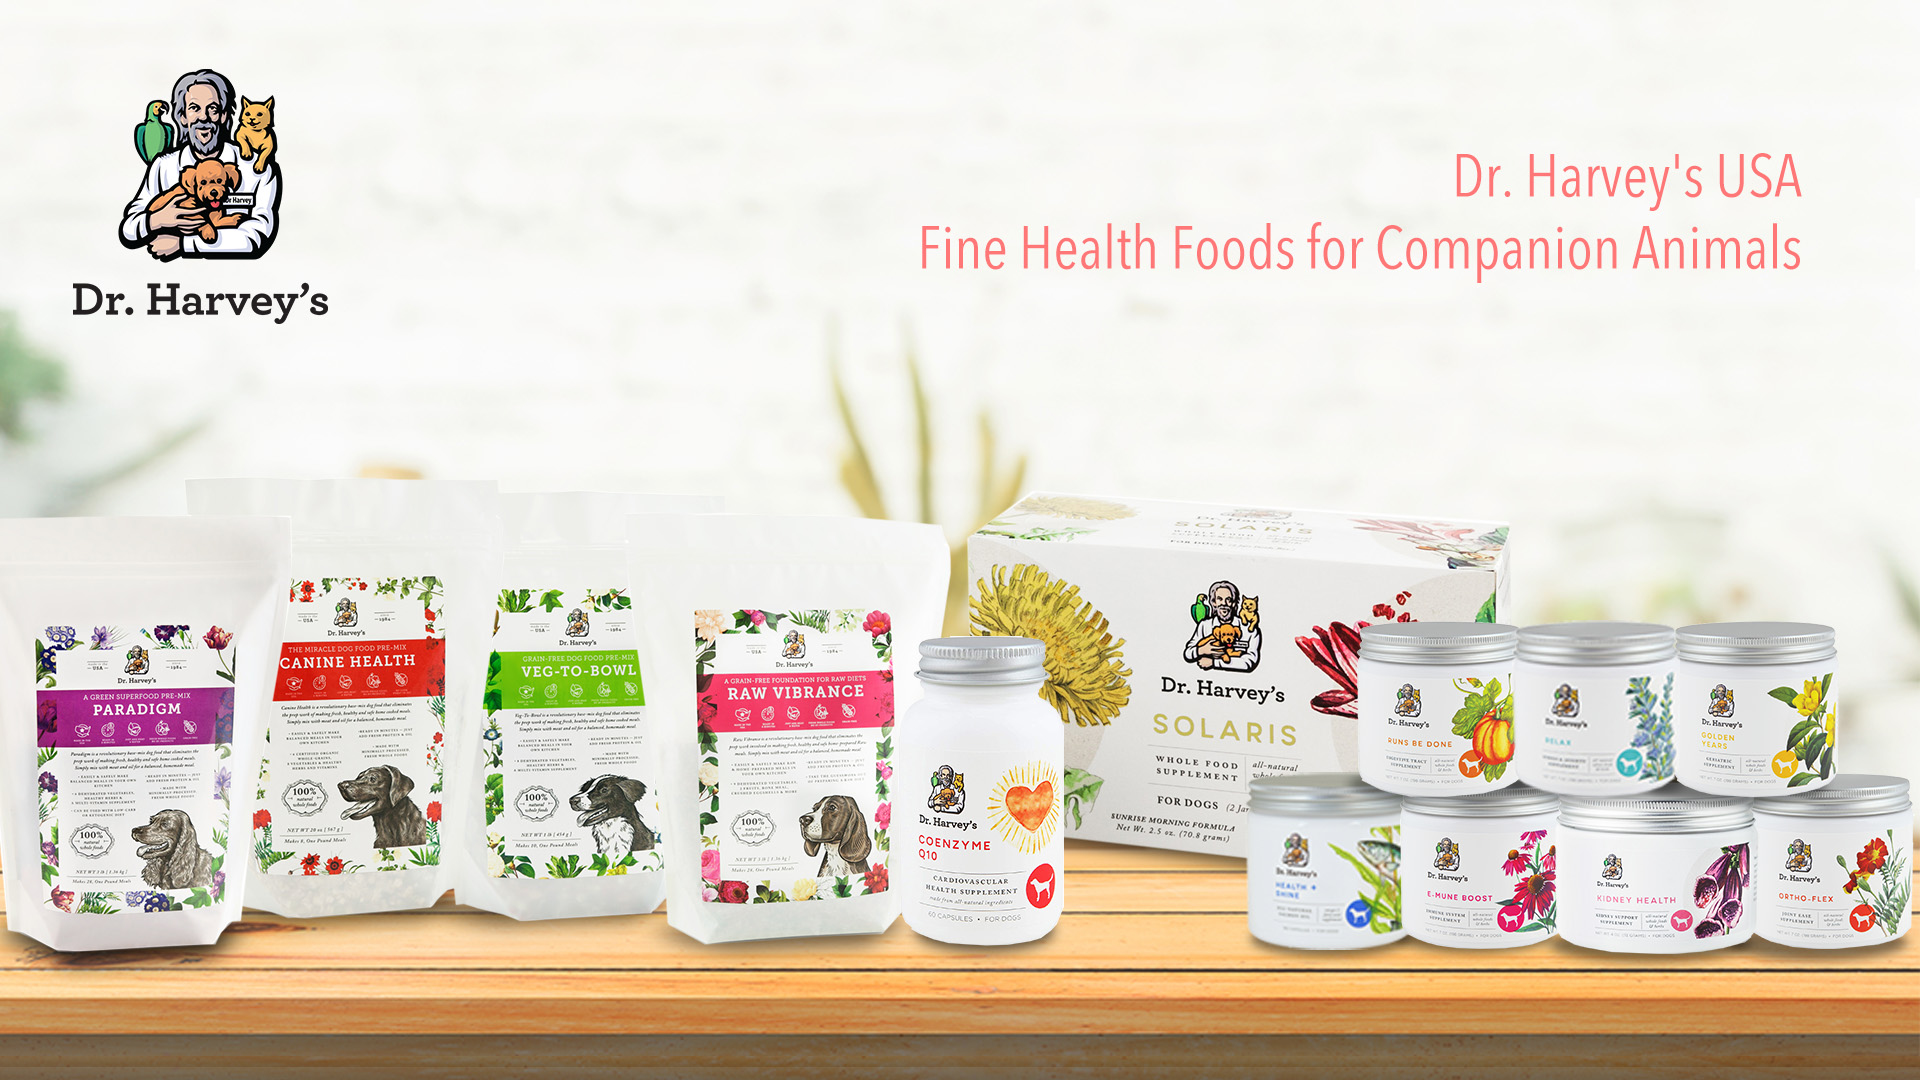 Dr. Harvey's  USA Fine Health Foods for Companion Animals